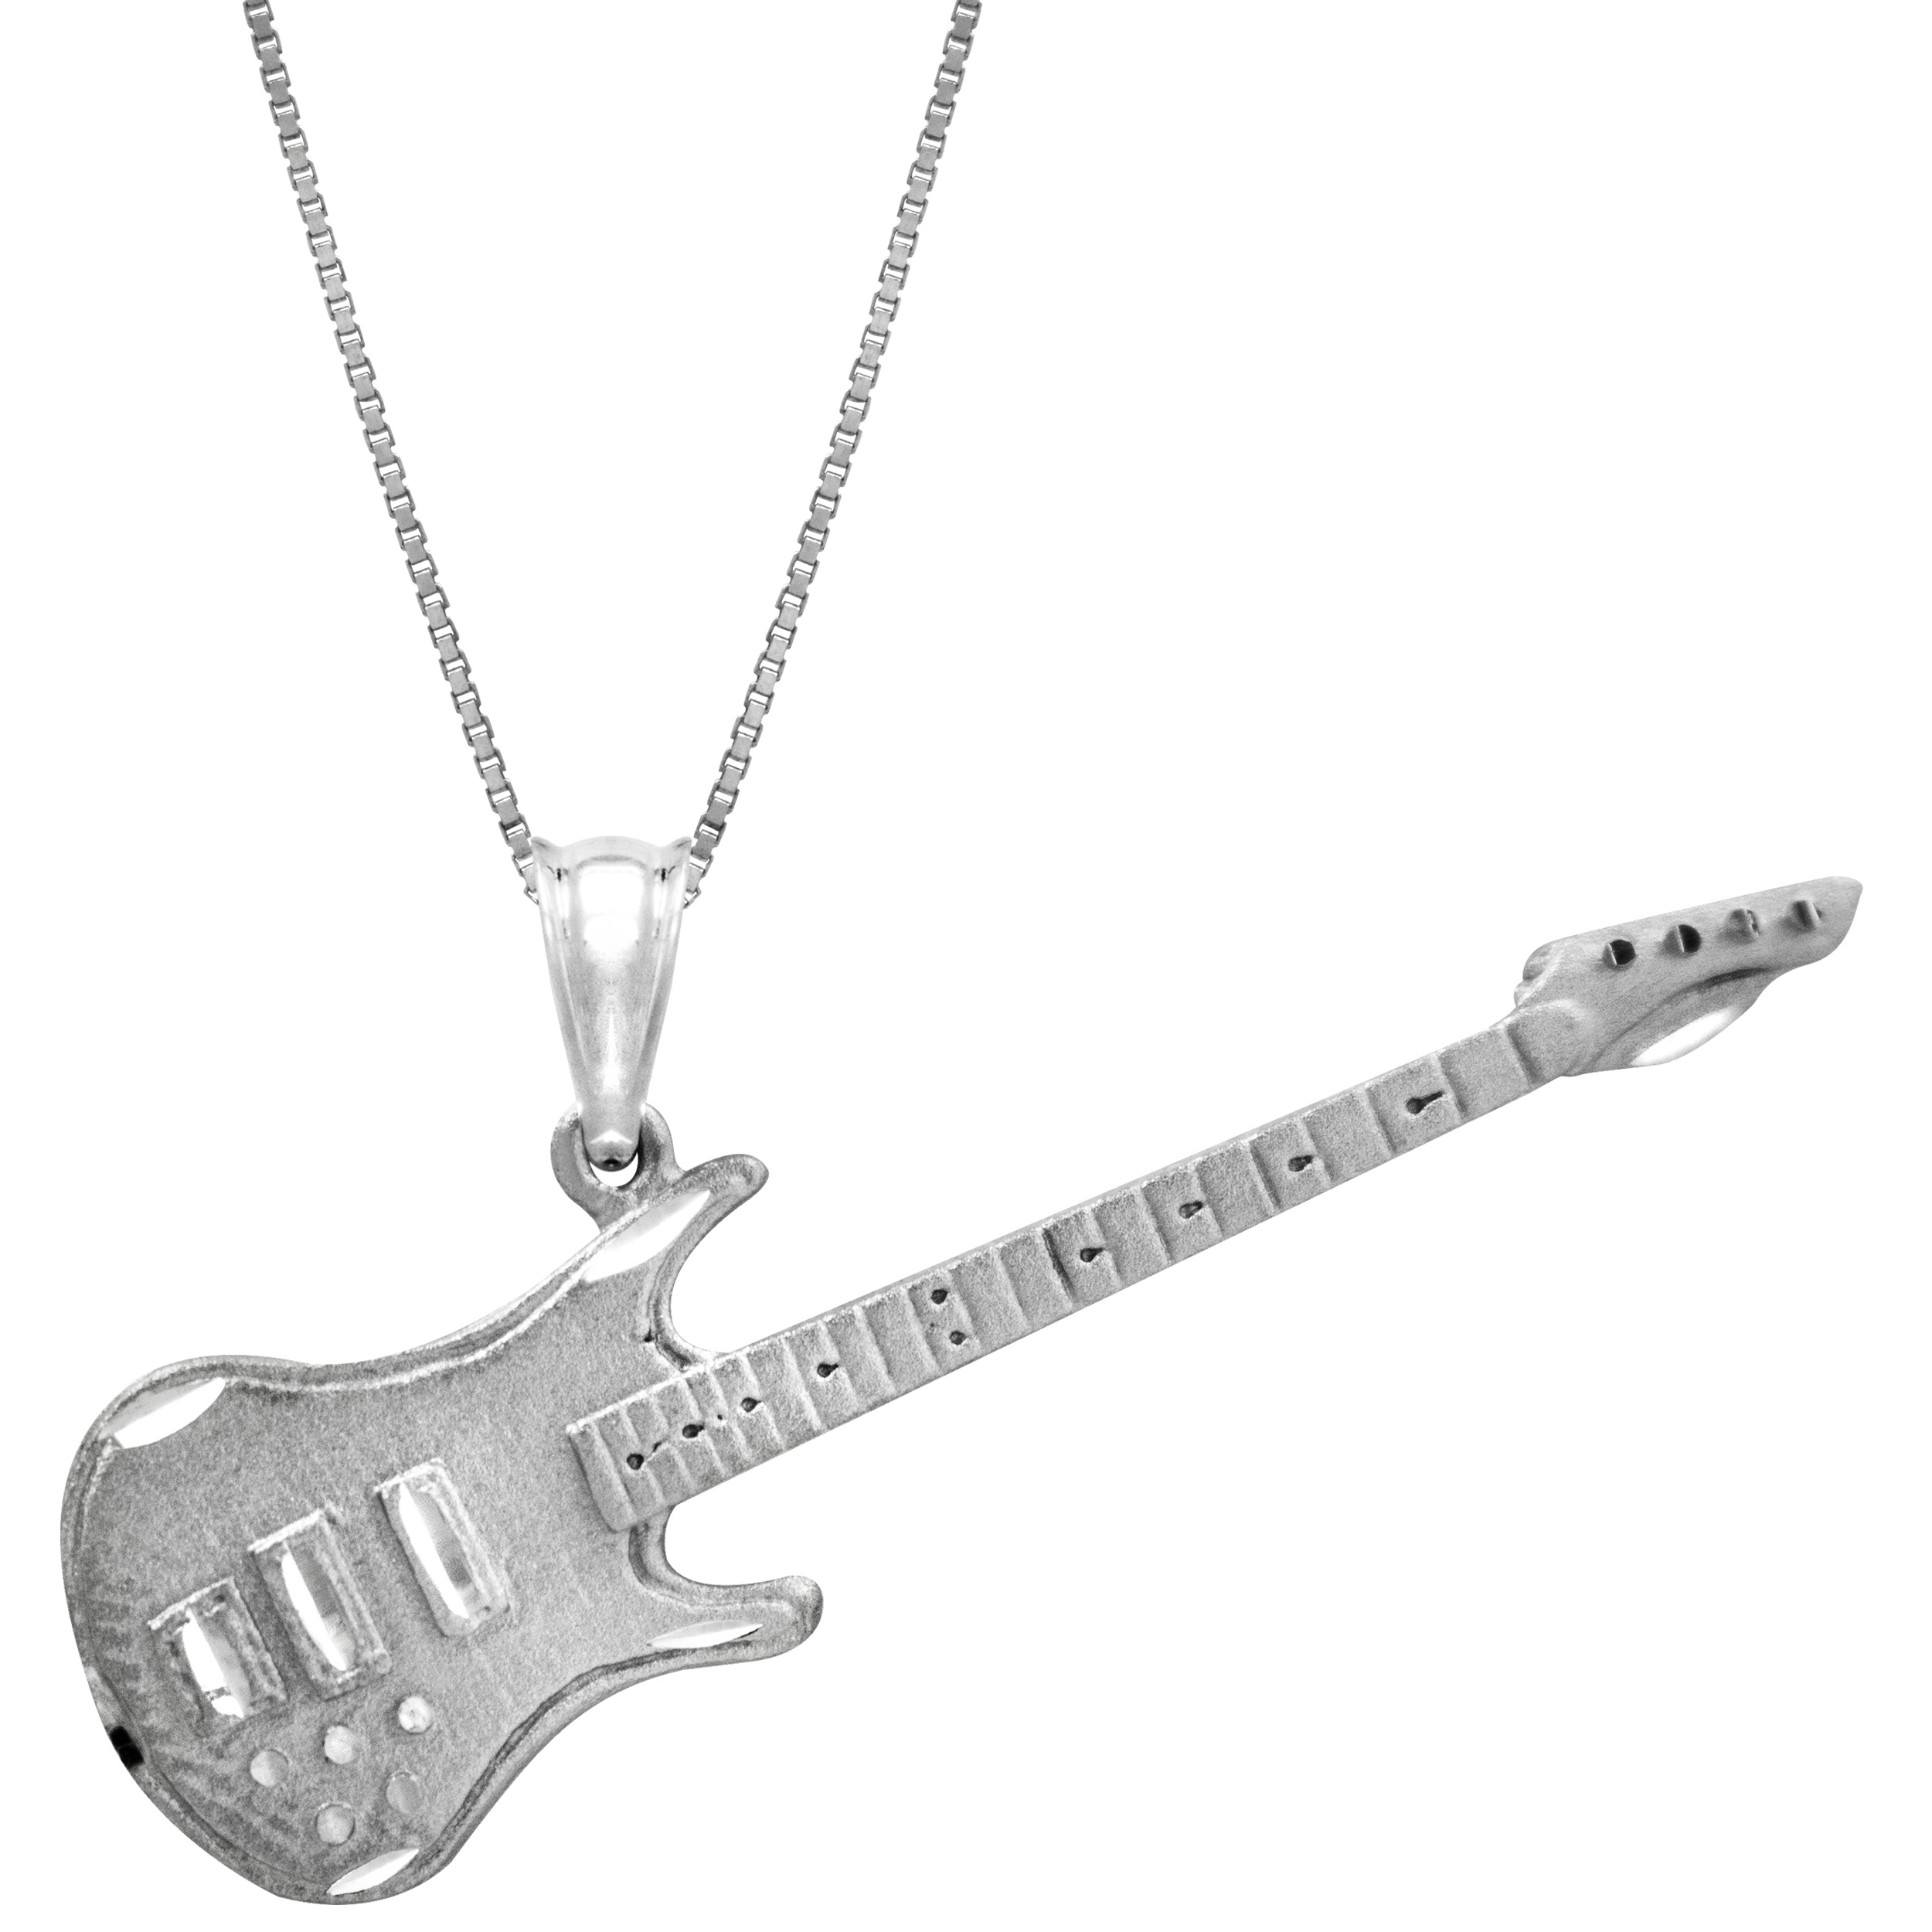 Honolulu Jewelry Company Sterling Silver Guitar Necklace Pendant